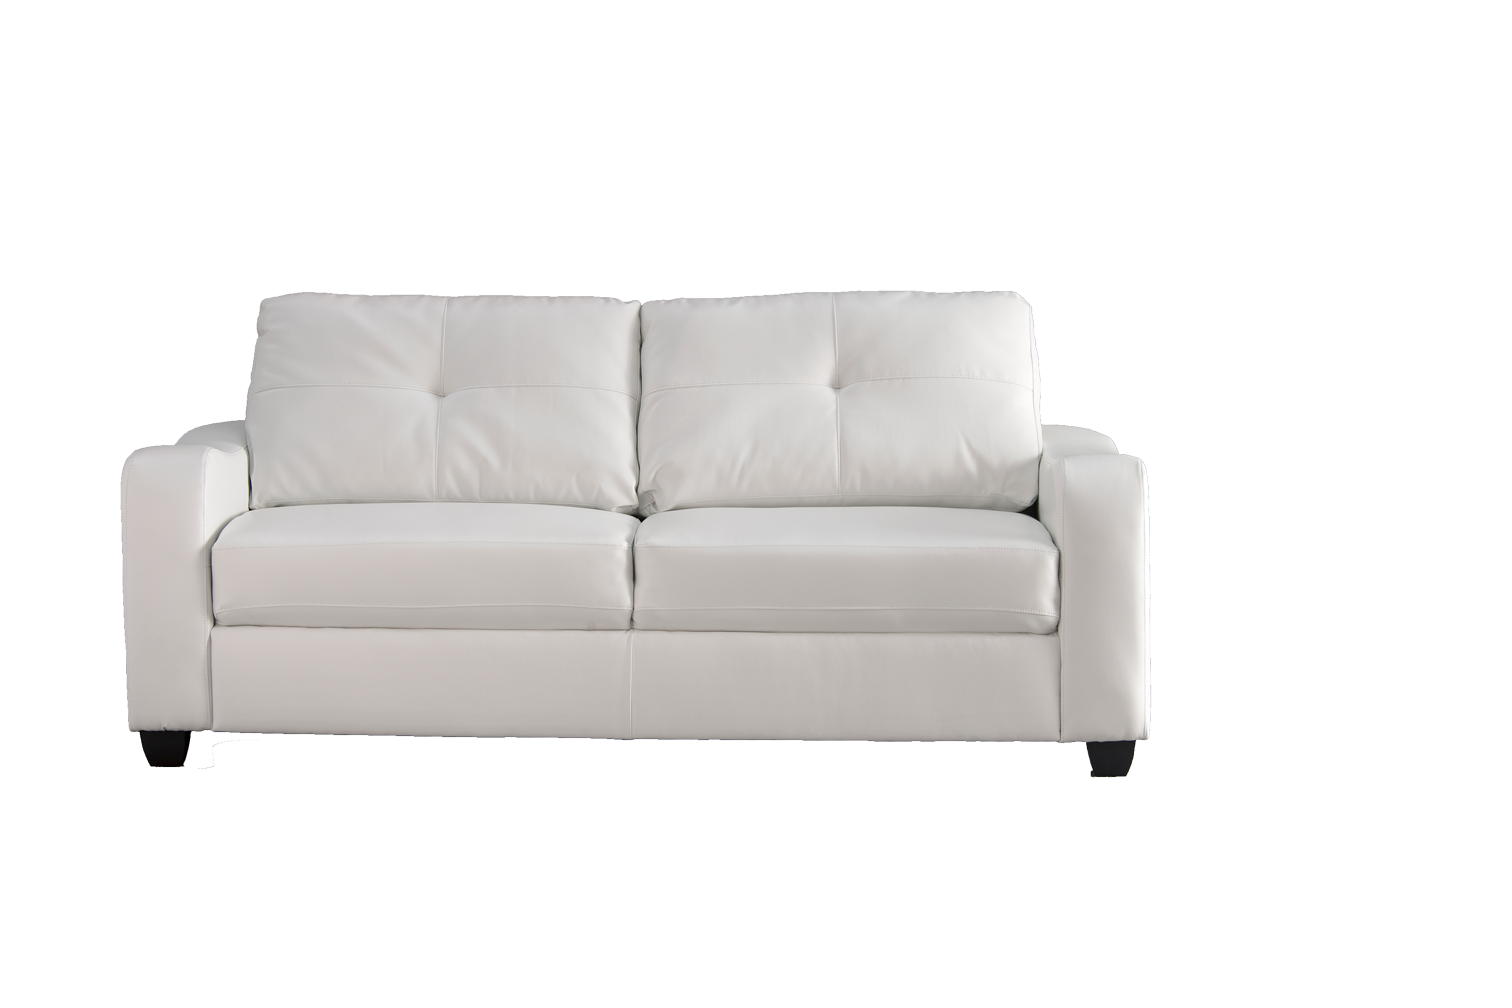 white couch png